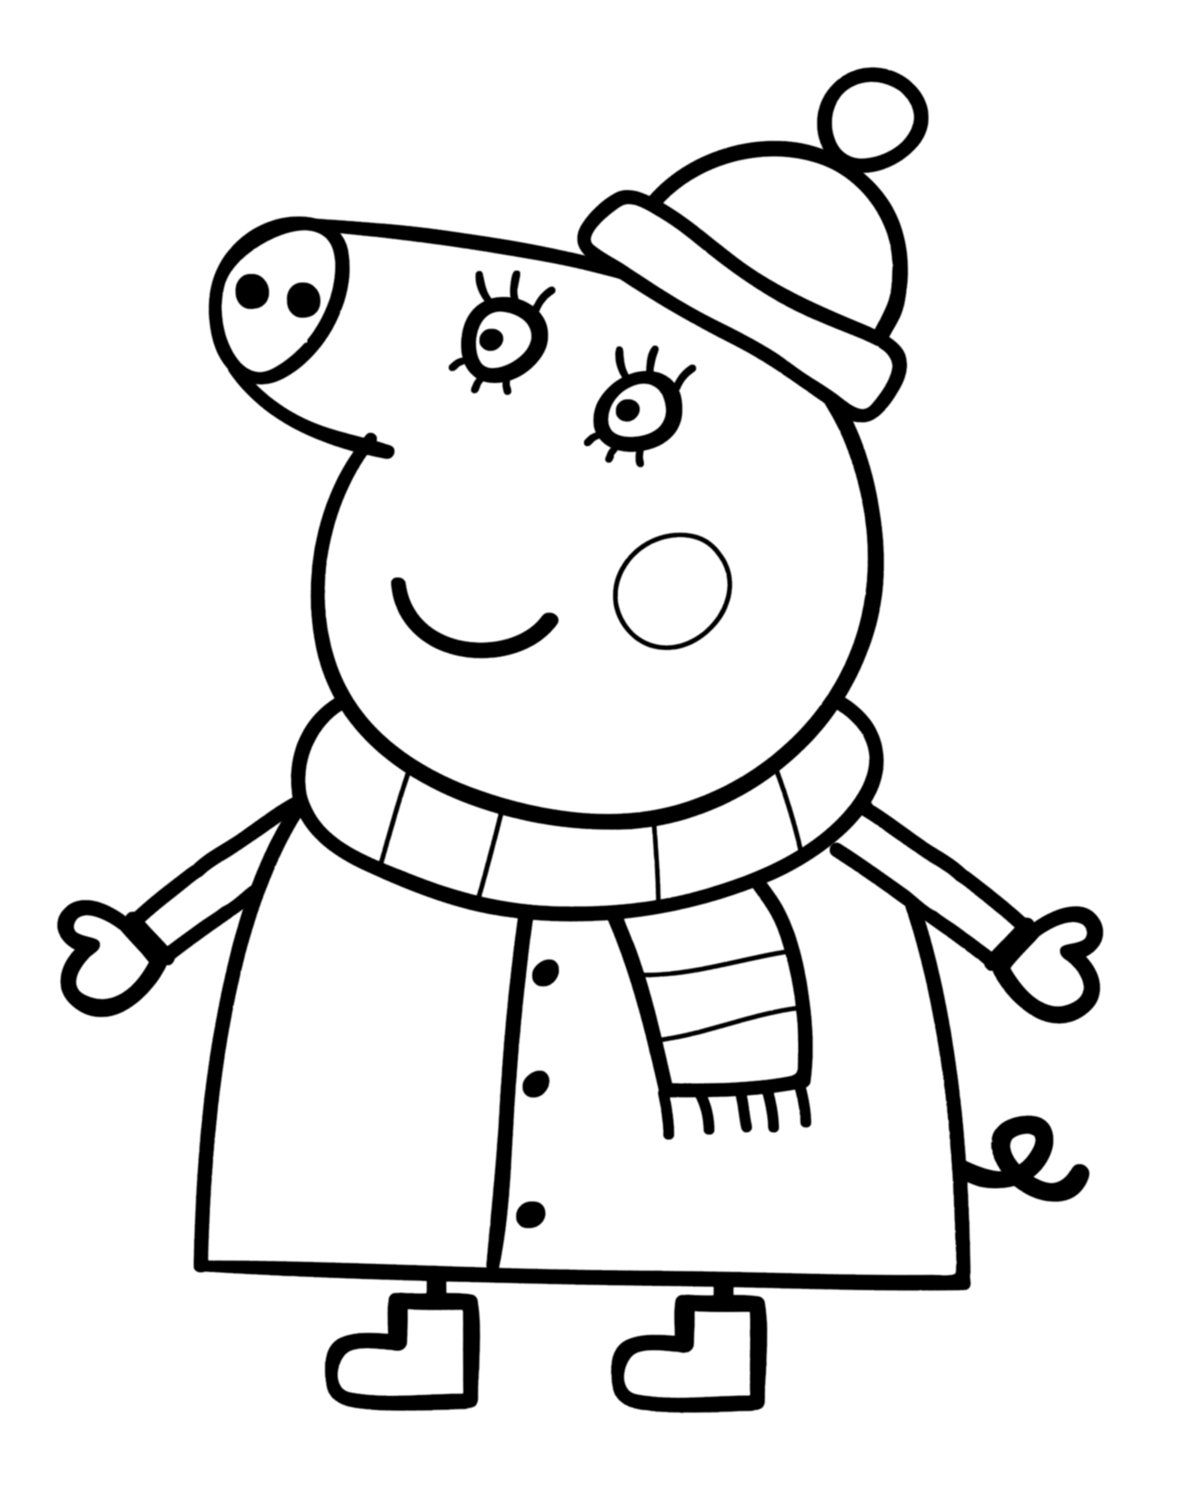 Fun Amp Learn Free Worksheets For Kid Peppa Pig Coloring